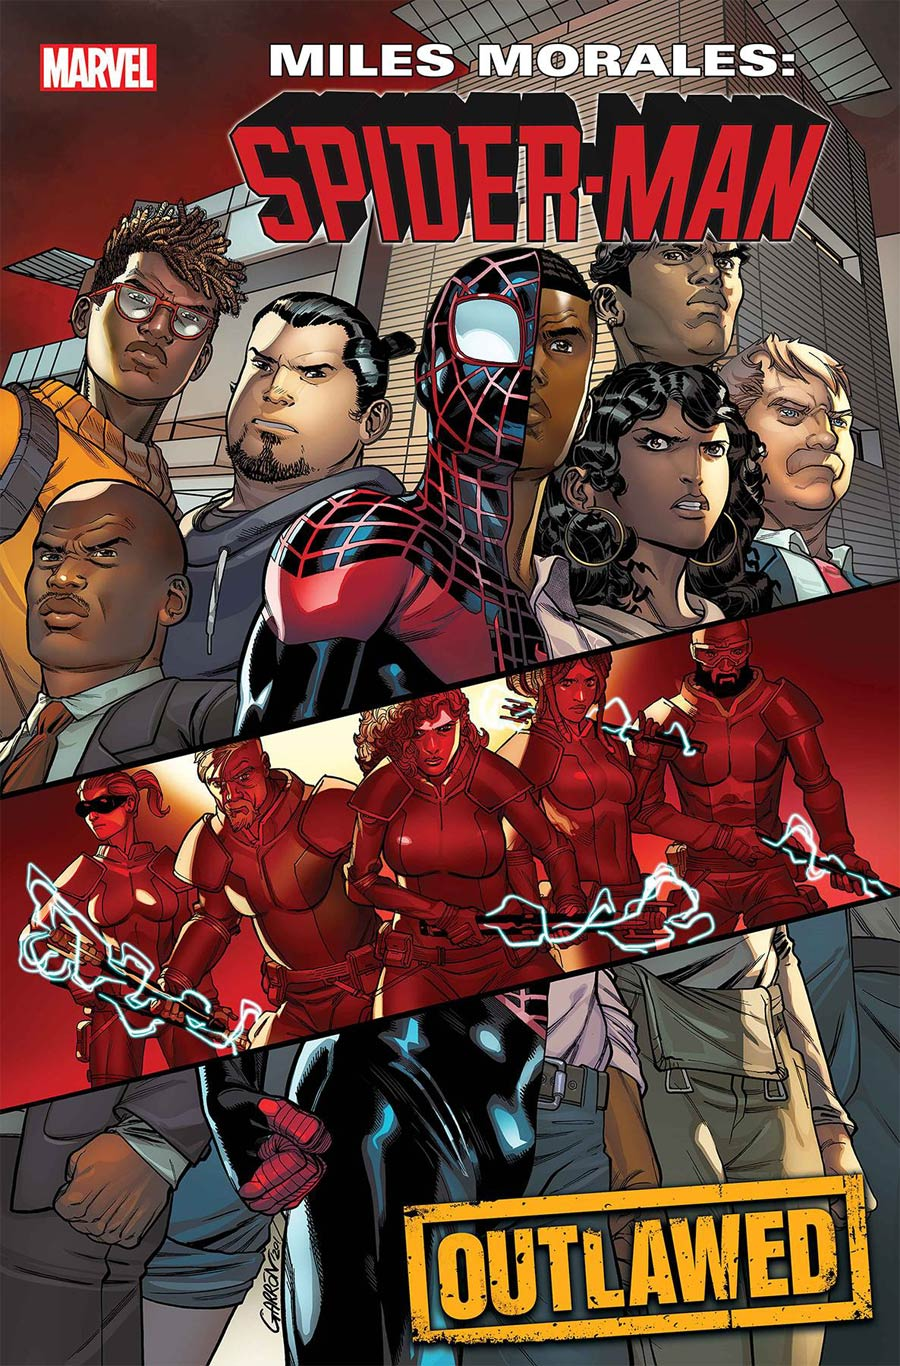 Miles Morales Spider-Man #18 Cover A Regular Javier Garron Cover (Outlawed Tie-In)